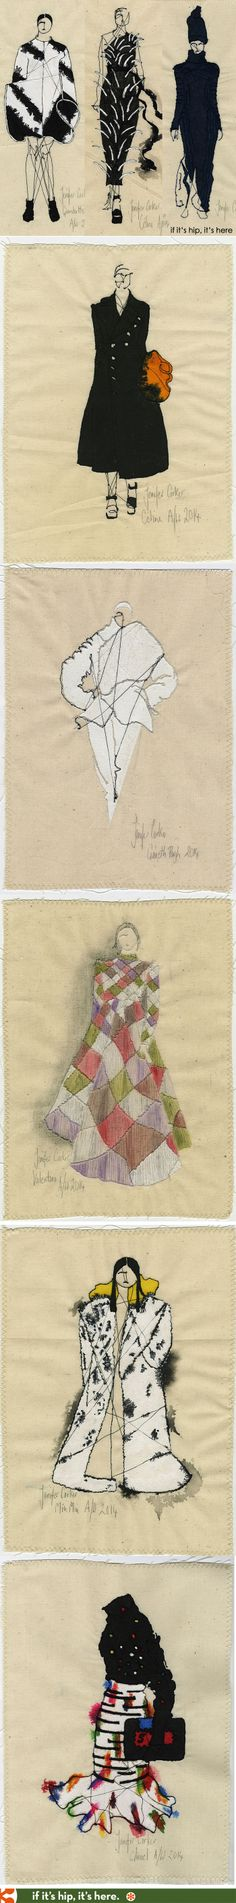 Jenifer Corker Depicts 2014 Runway Fashions by Chanel, Celine, Gareth Pugh, Balenciaga, Valetino and more in embroidery